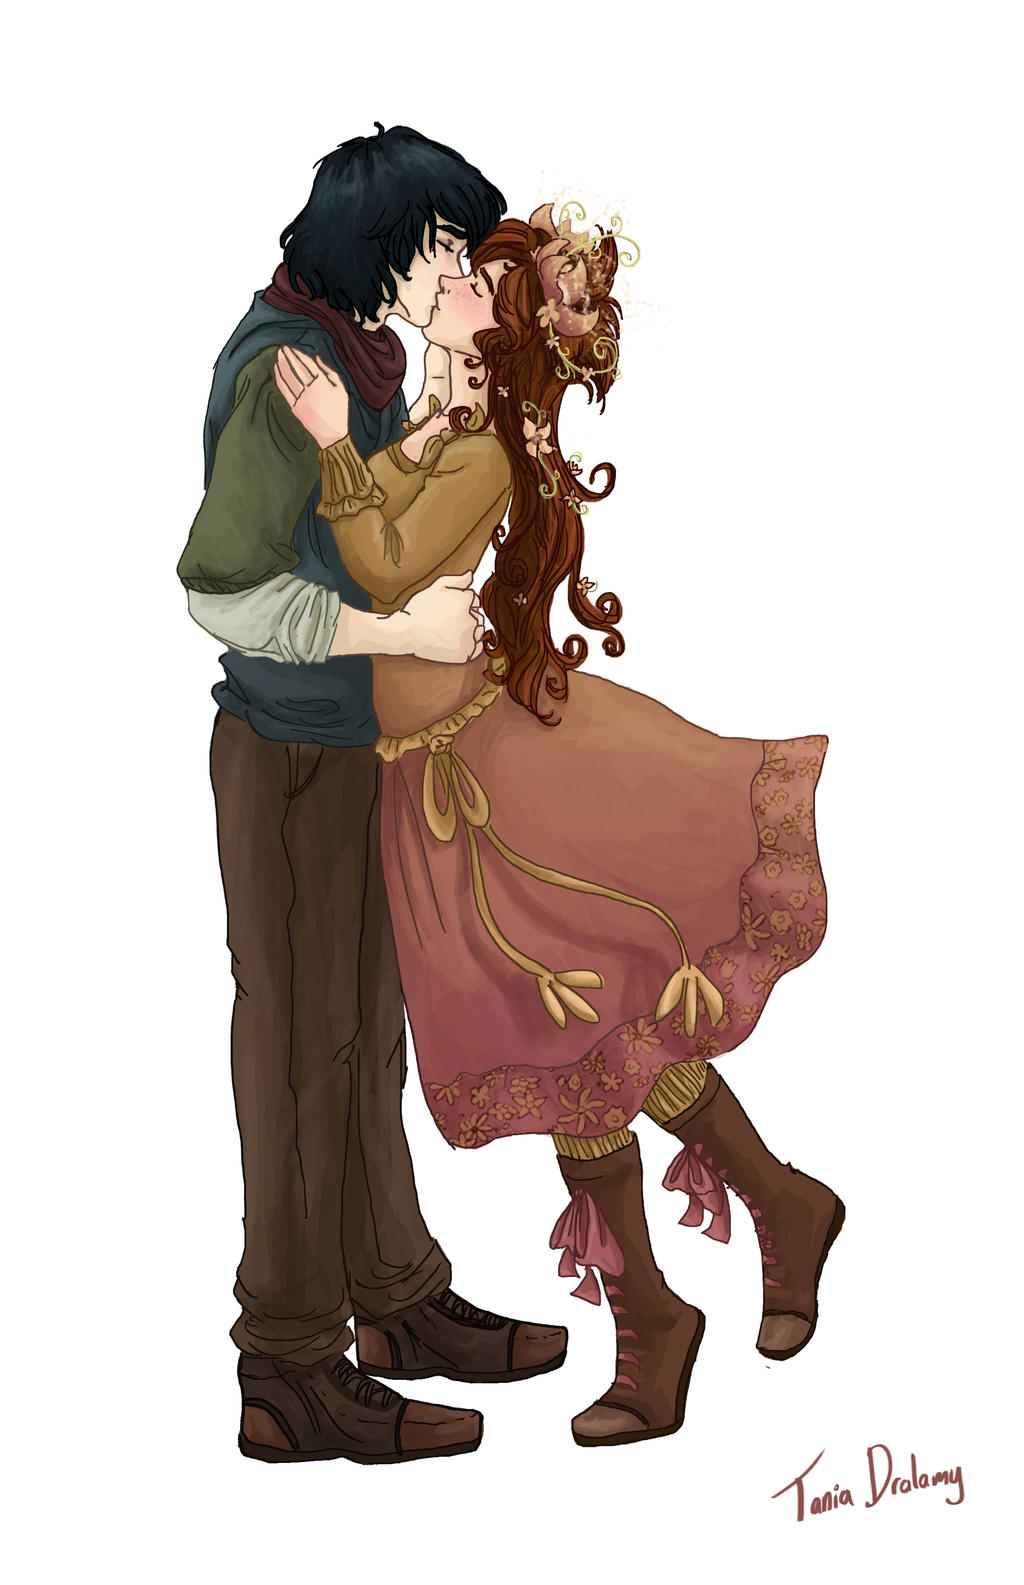 Jim and Vainilla by Dralamy on DeviantArt